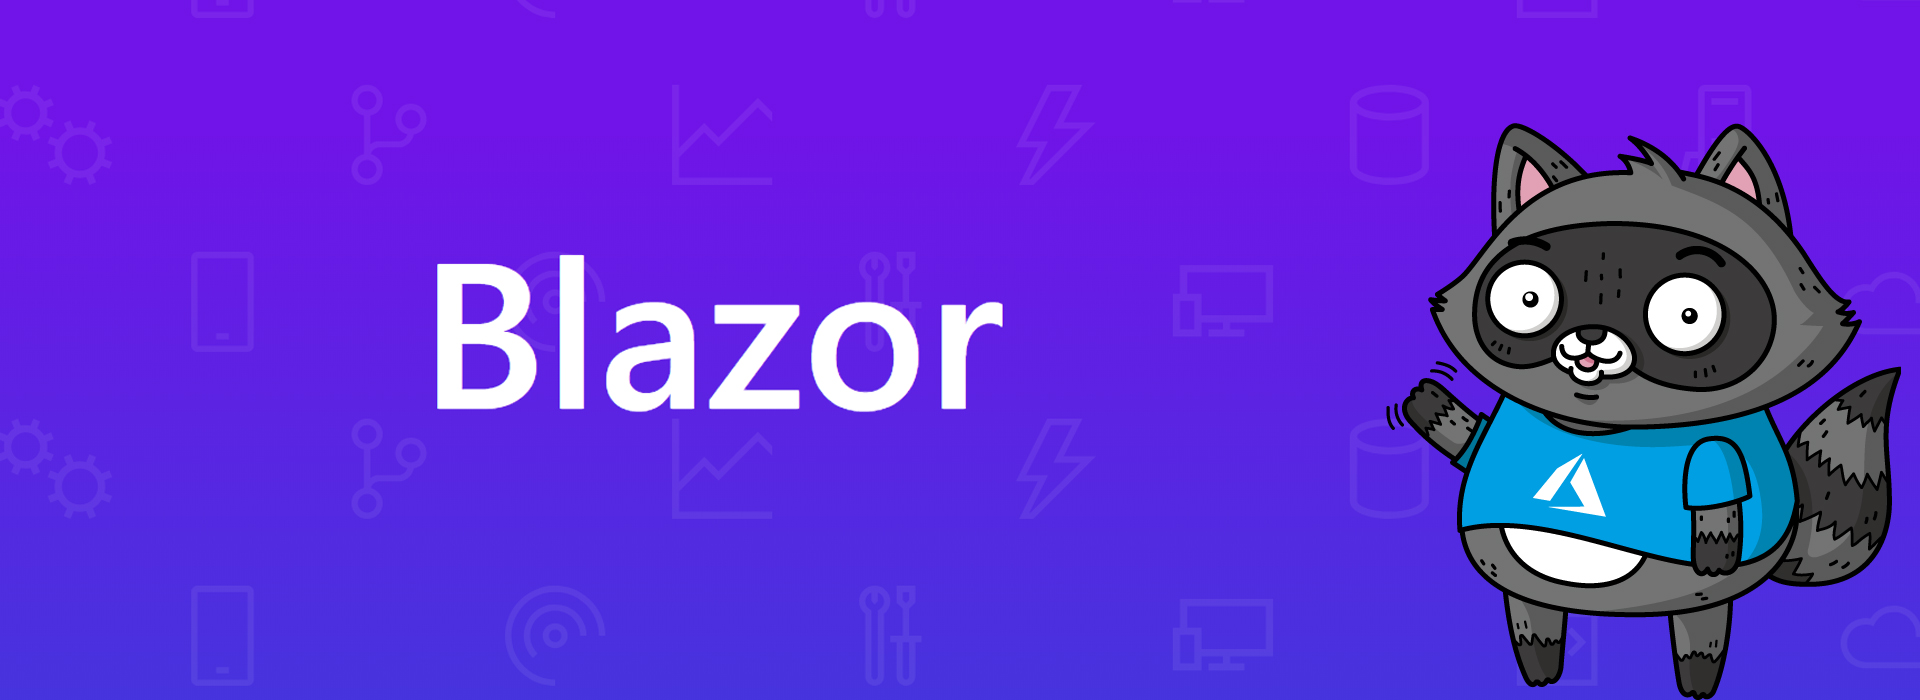 The Blazor logo, with a picture of Bit the Raccoon on the right.